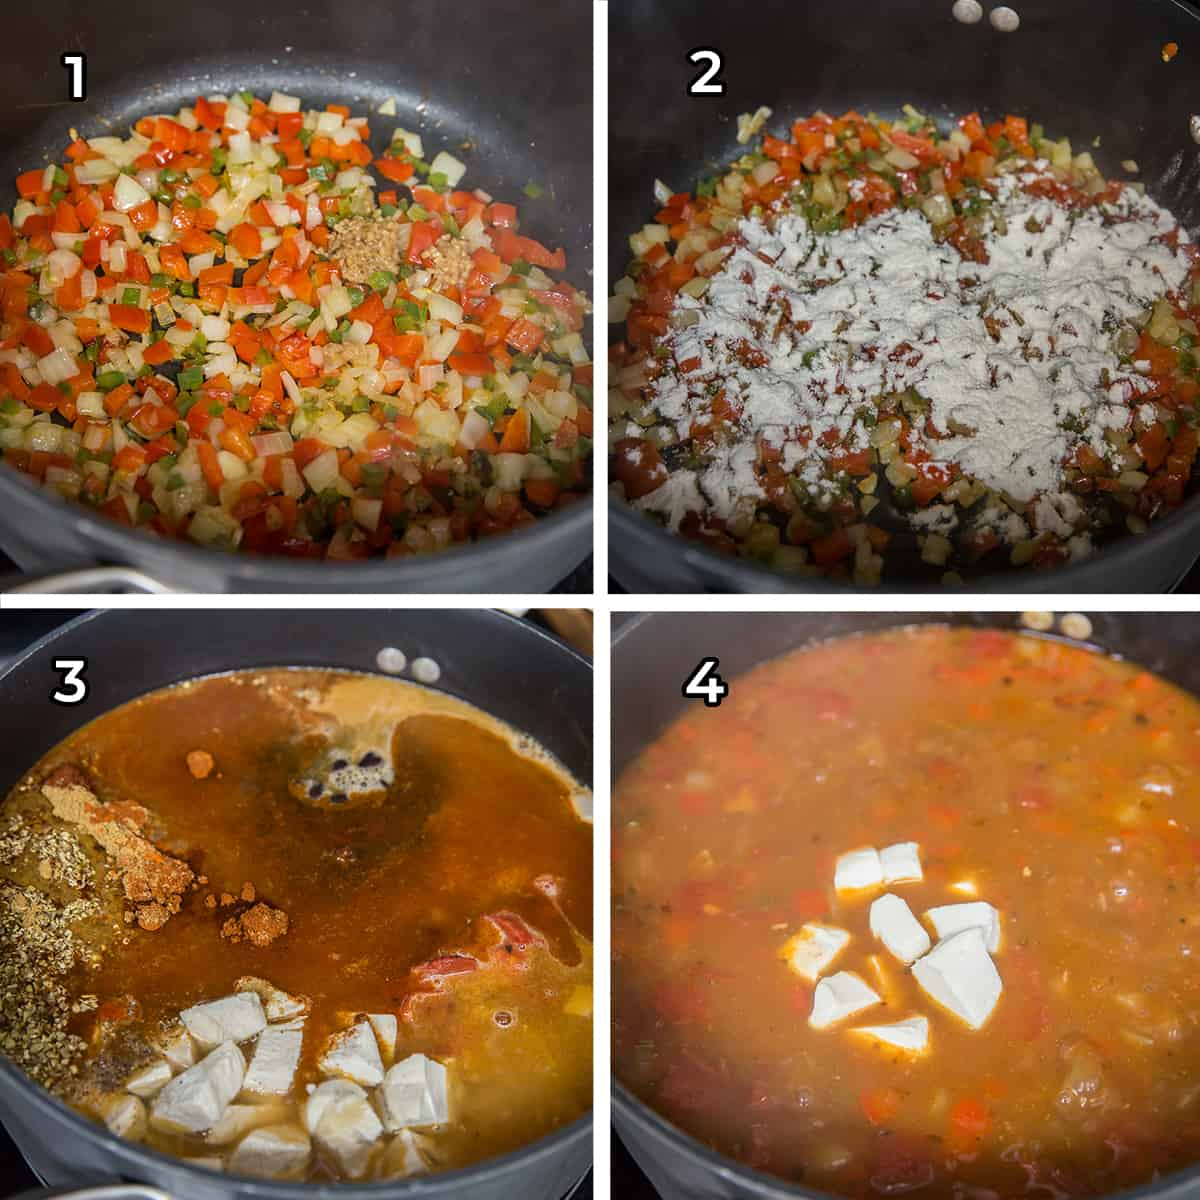 Four images showing soup being prepared in a pot.